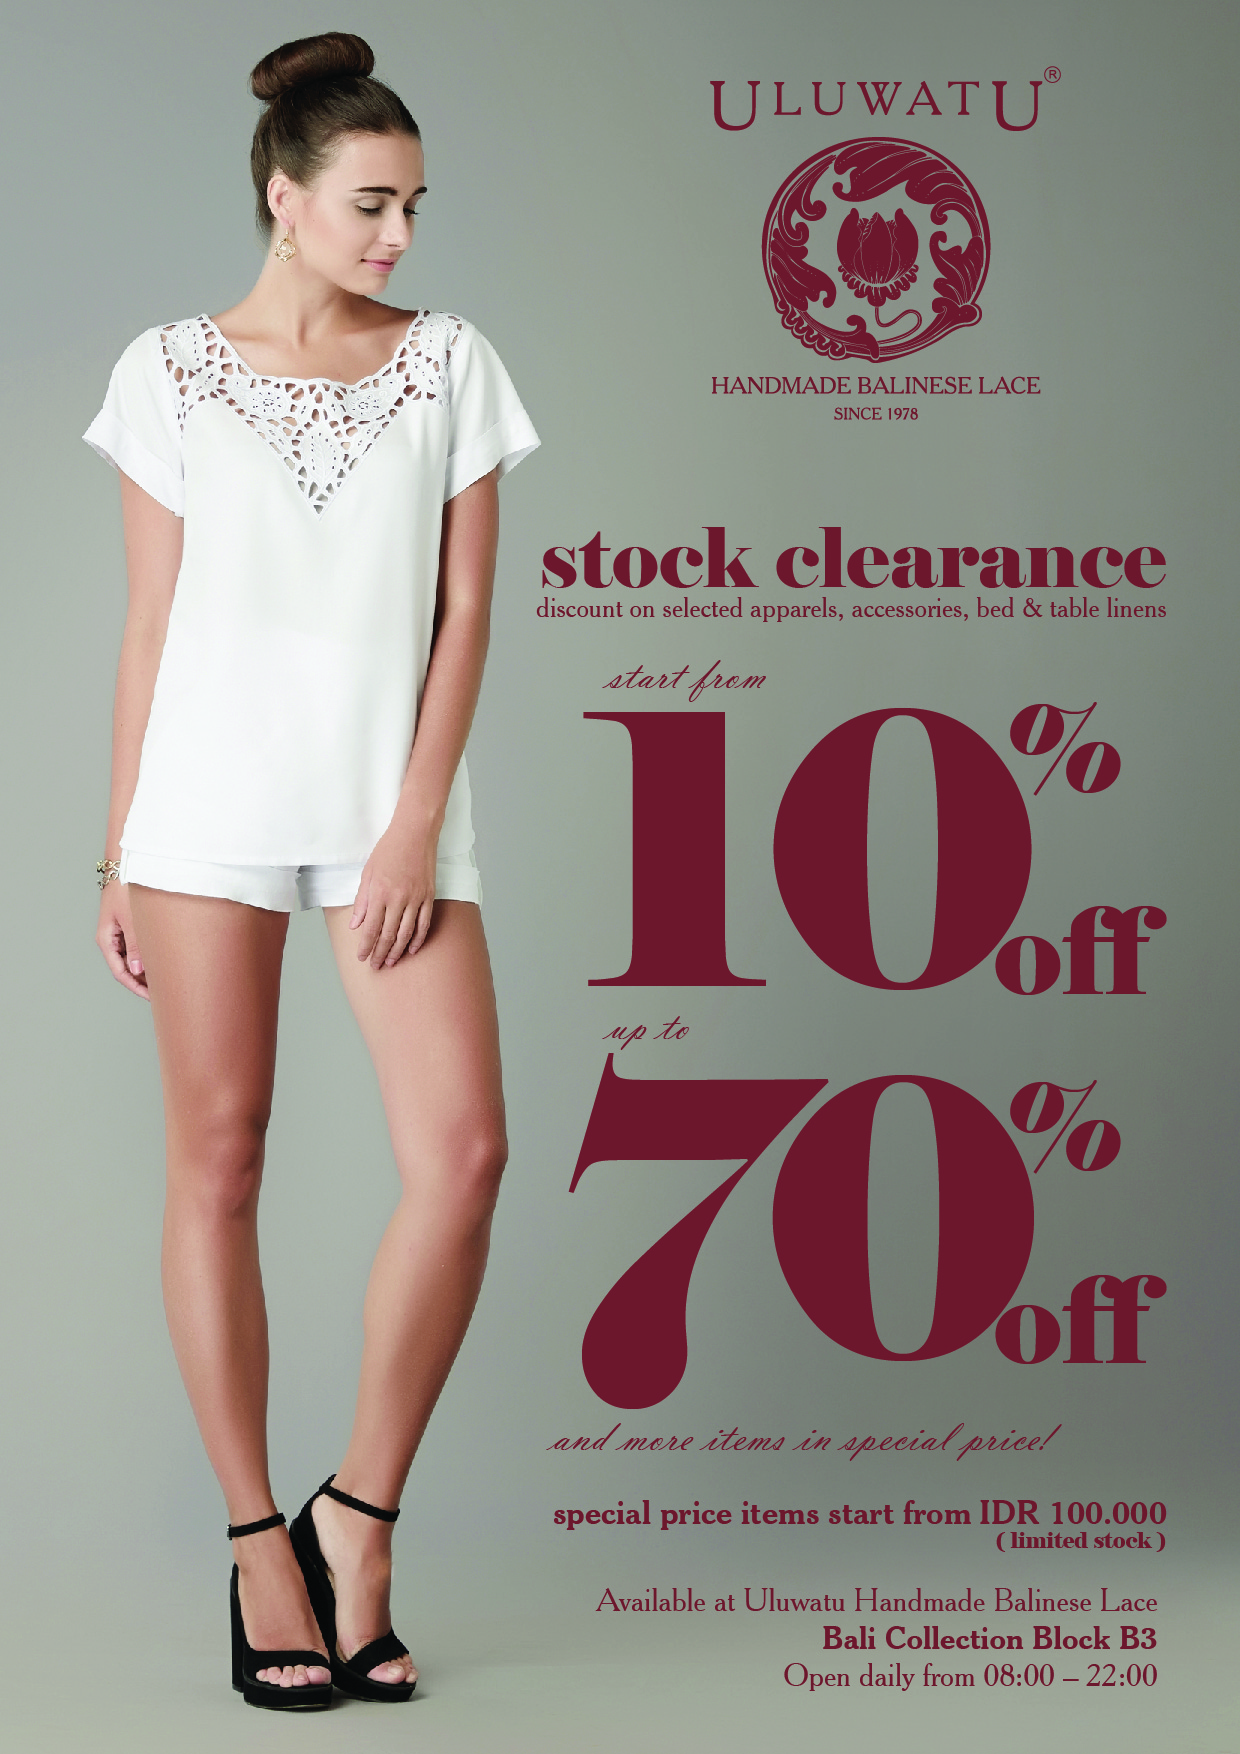 Uluwatu Clearence sale - Shopping Center in Bali